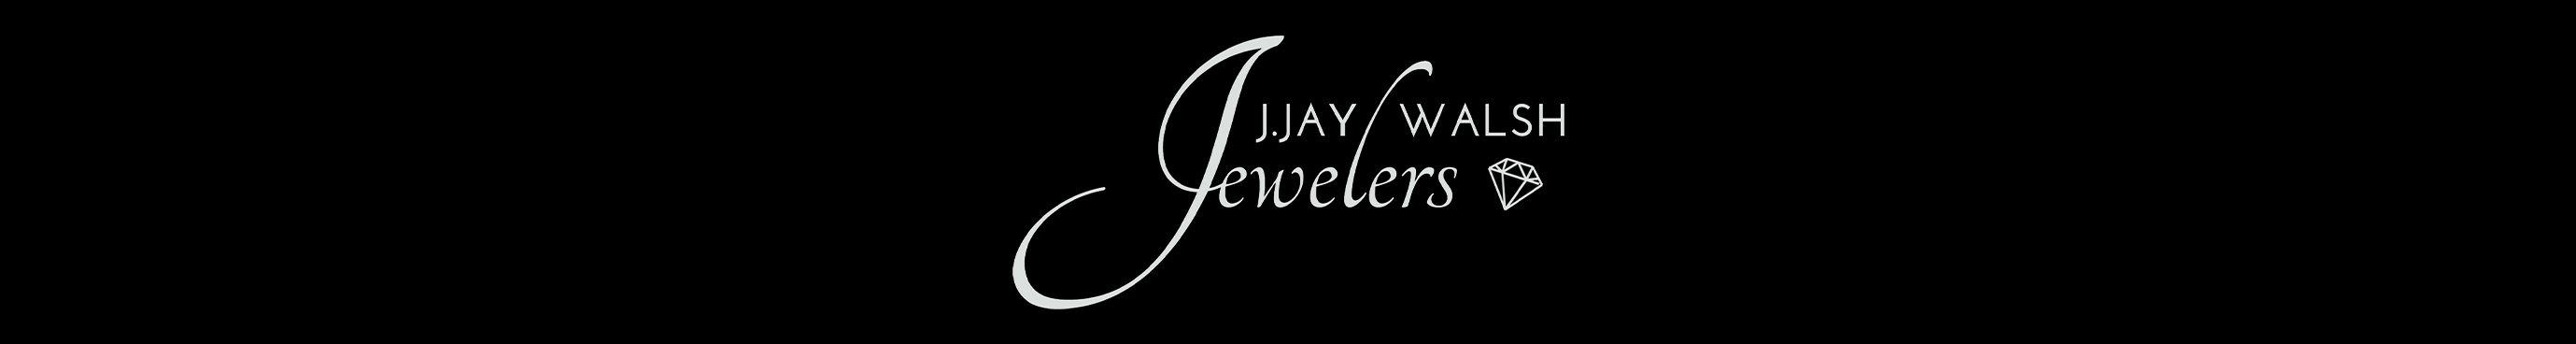 J. Jay Walsh Jewelers Logo